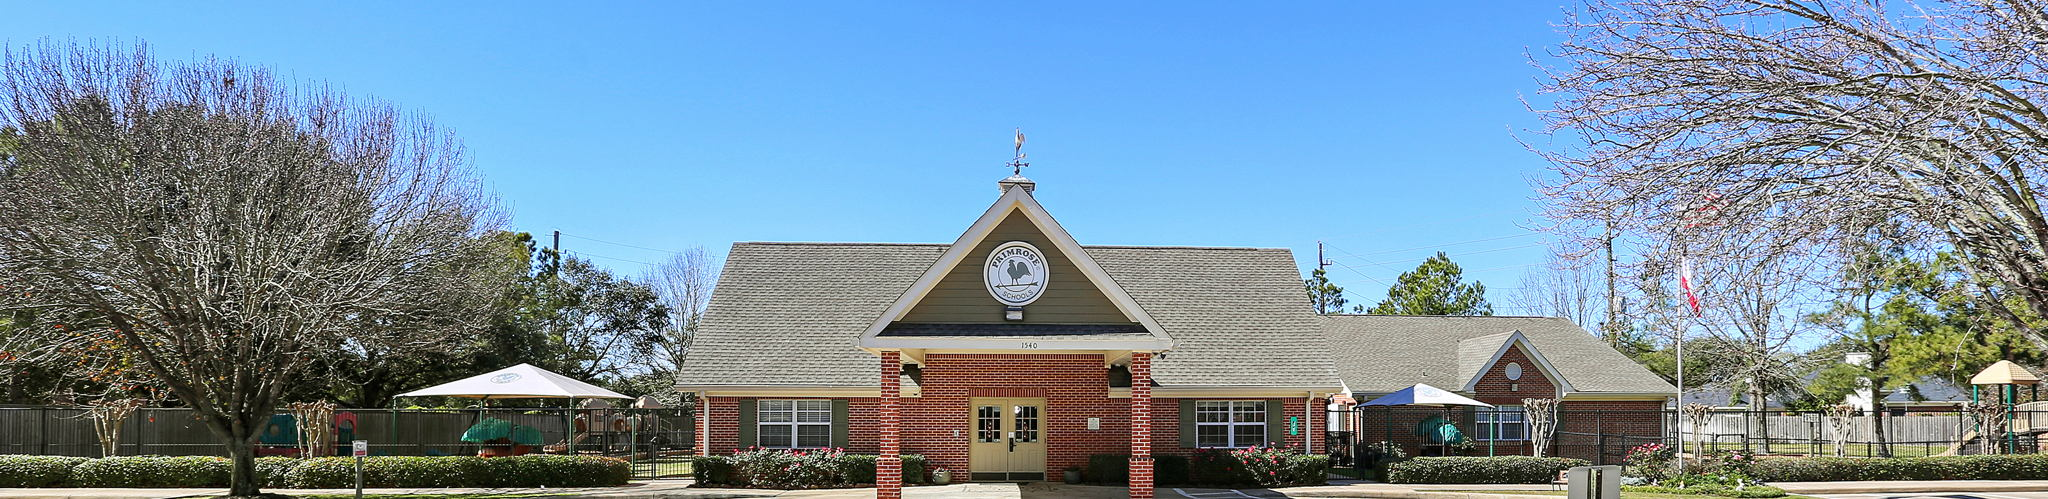 Exterior of a Primrose School of Cinco Ranch